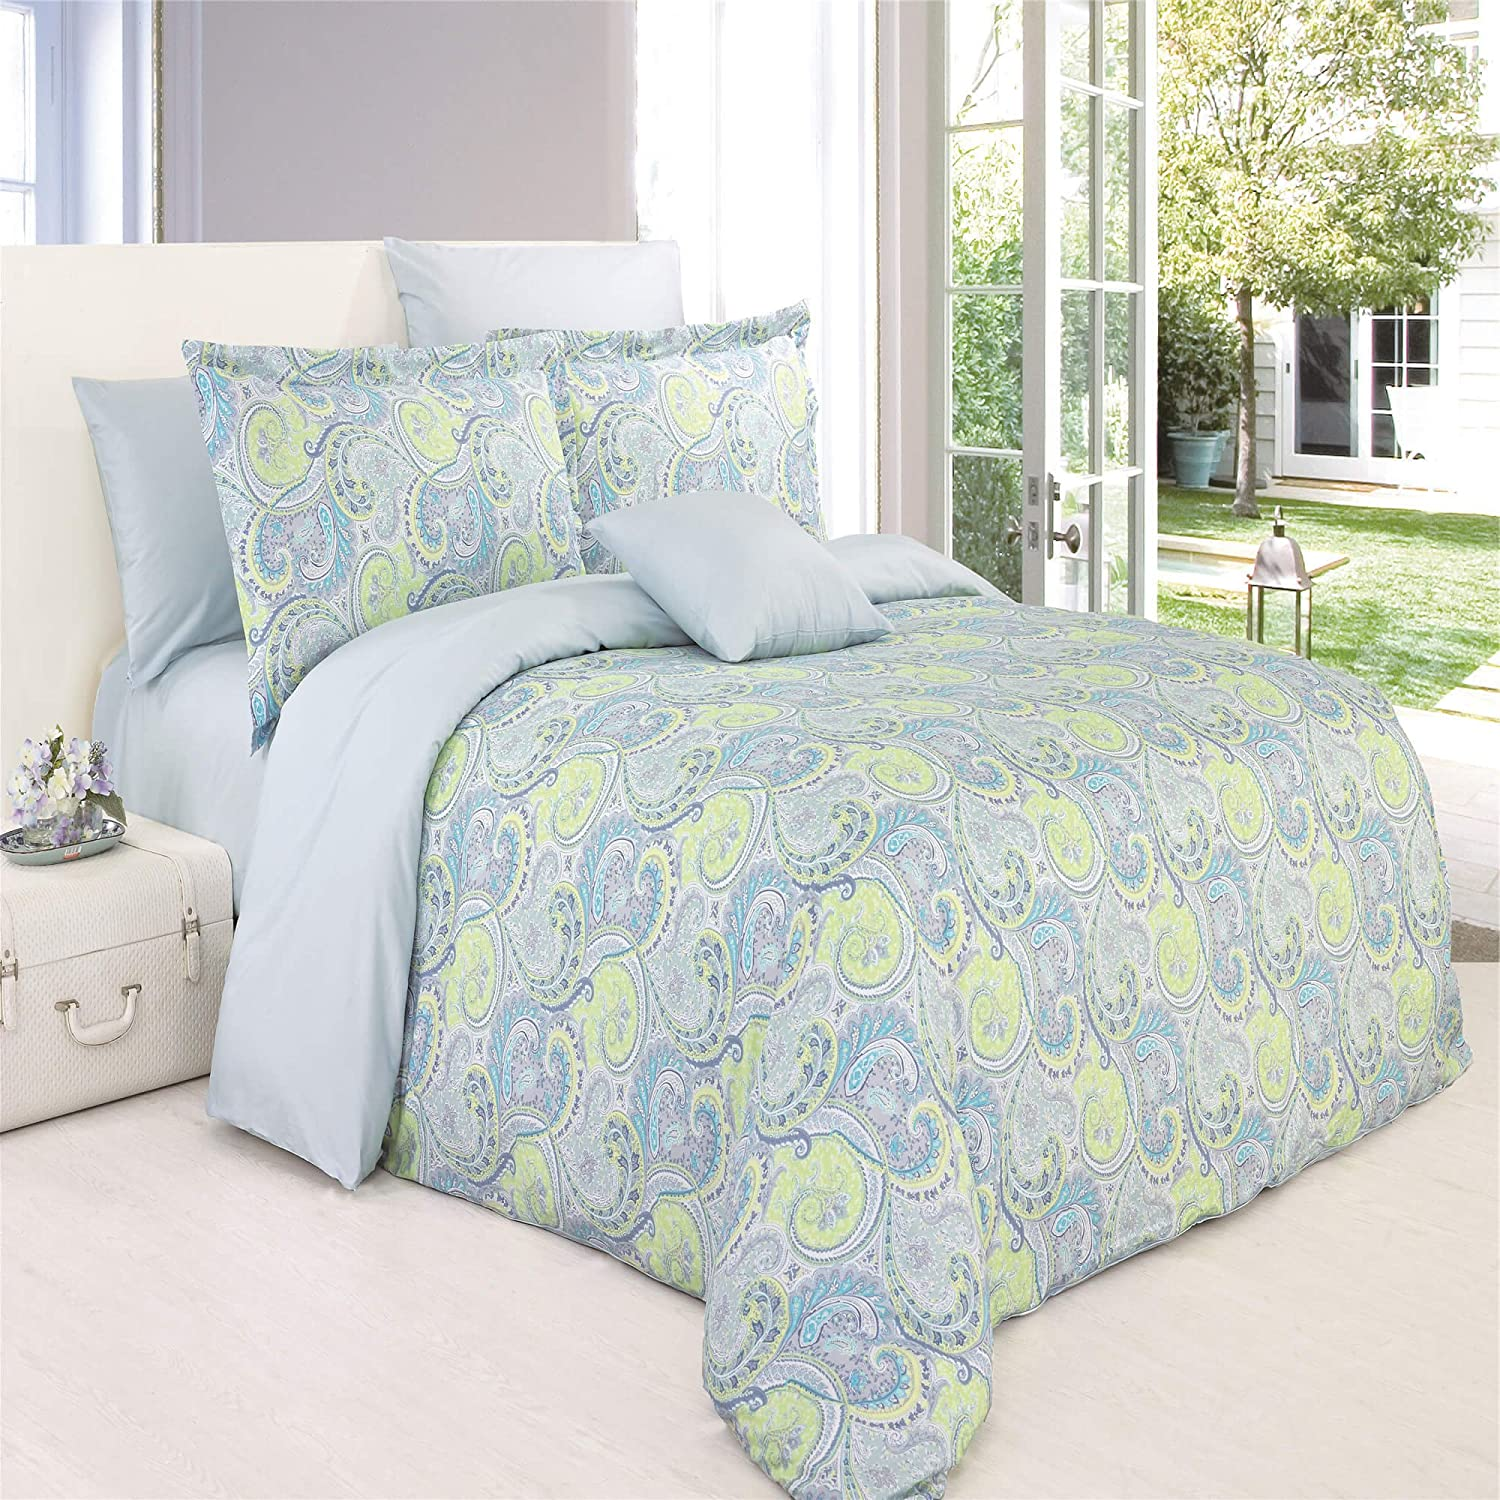 North Home CHEERY00DCTW 100/% Cotton Duvet Cover Set Twin Flower Green 4 Piece